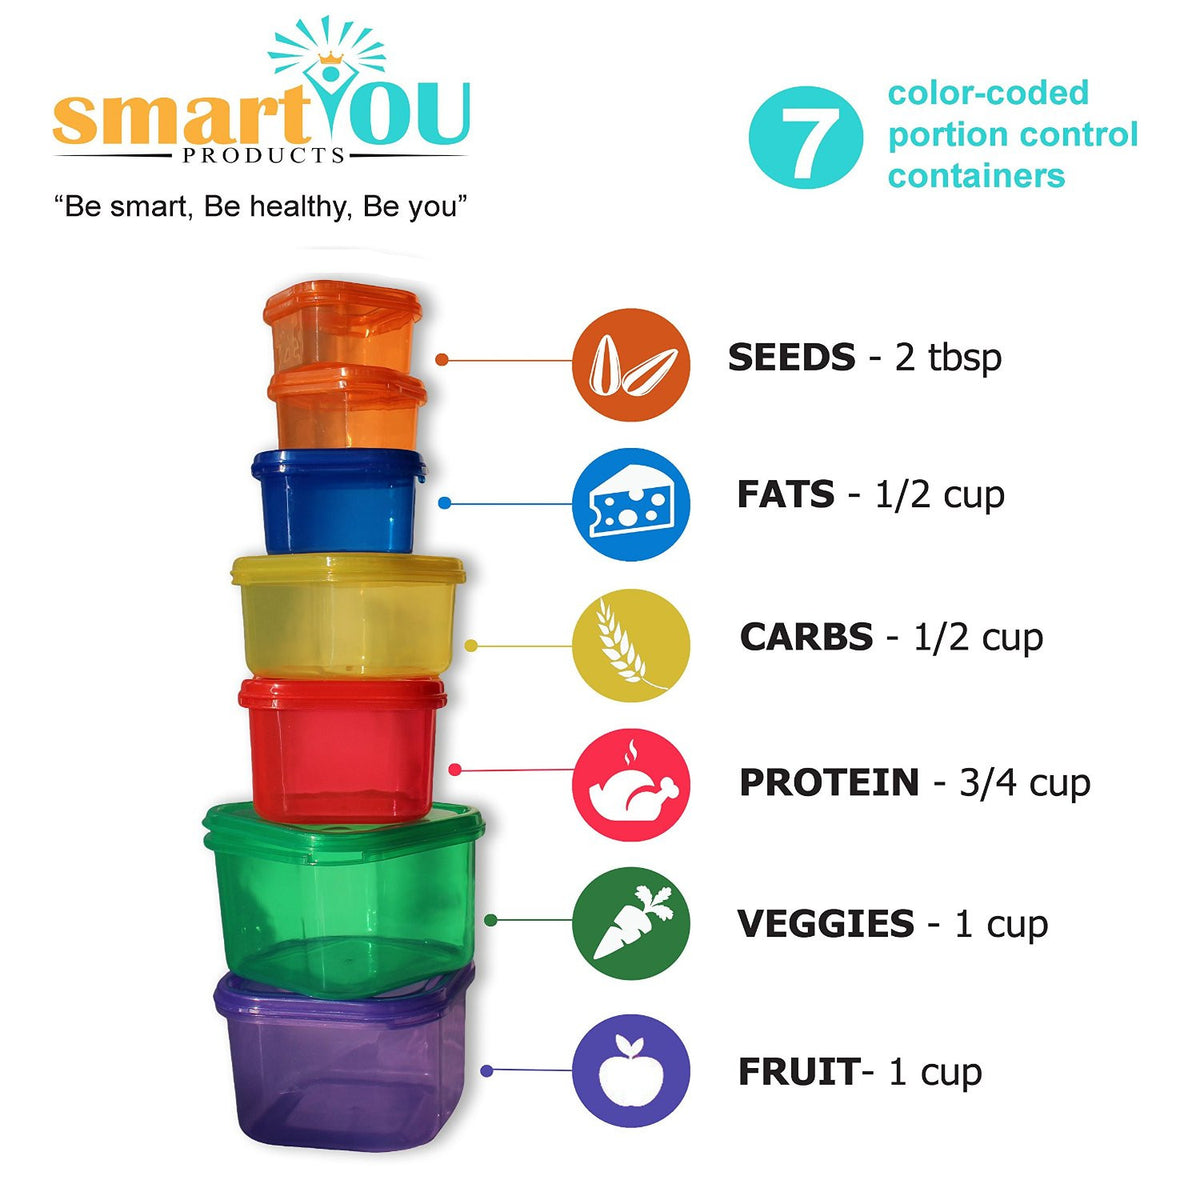 smartYOU LABELED 7 Piece Portion Control Containers Kit